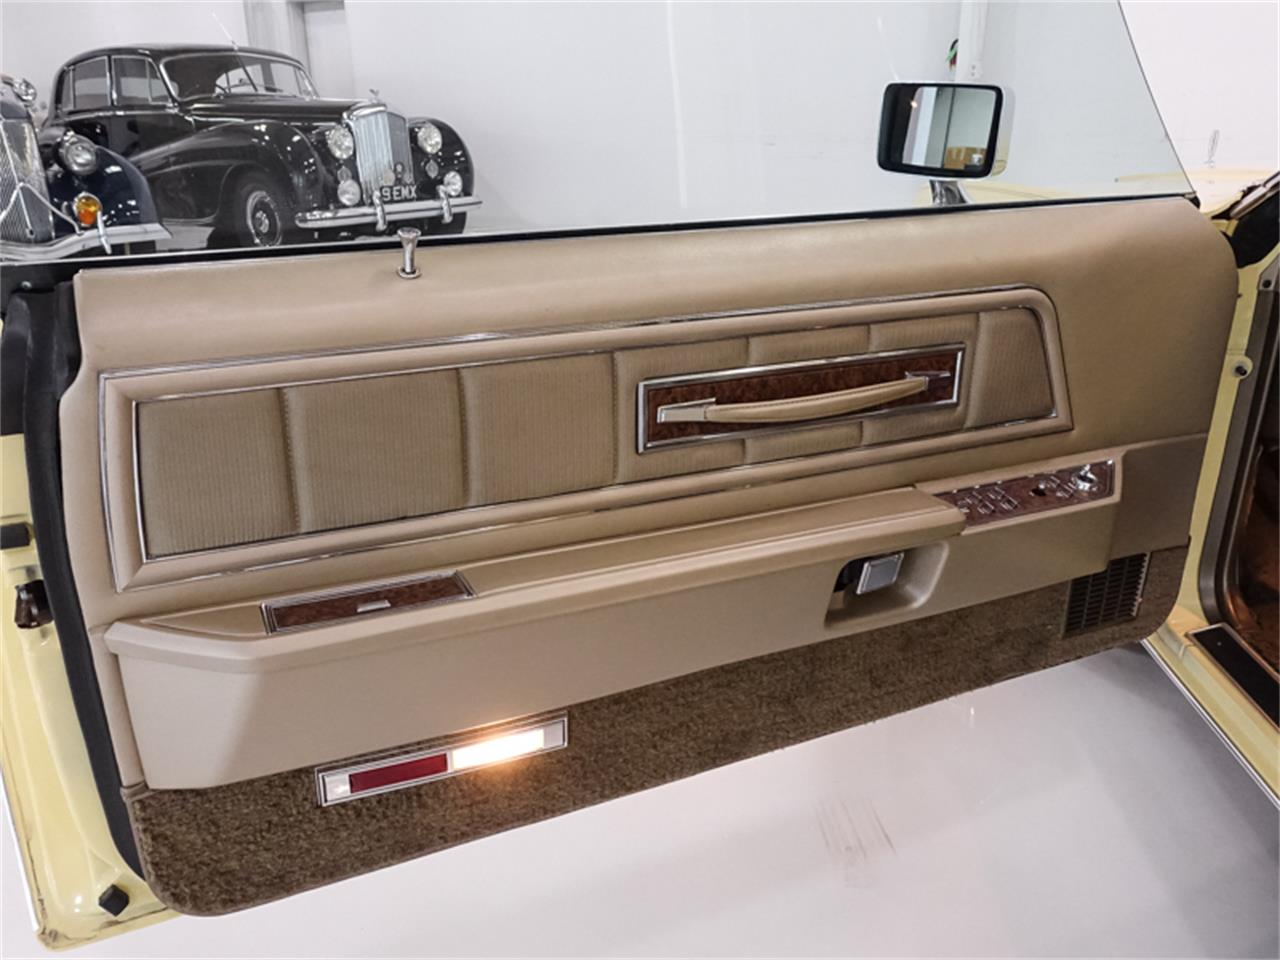 1972 Lincoln Continental Mark IV for sale in St. Louis, MO – photo 25